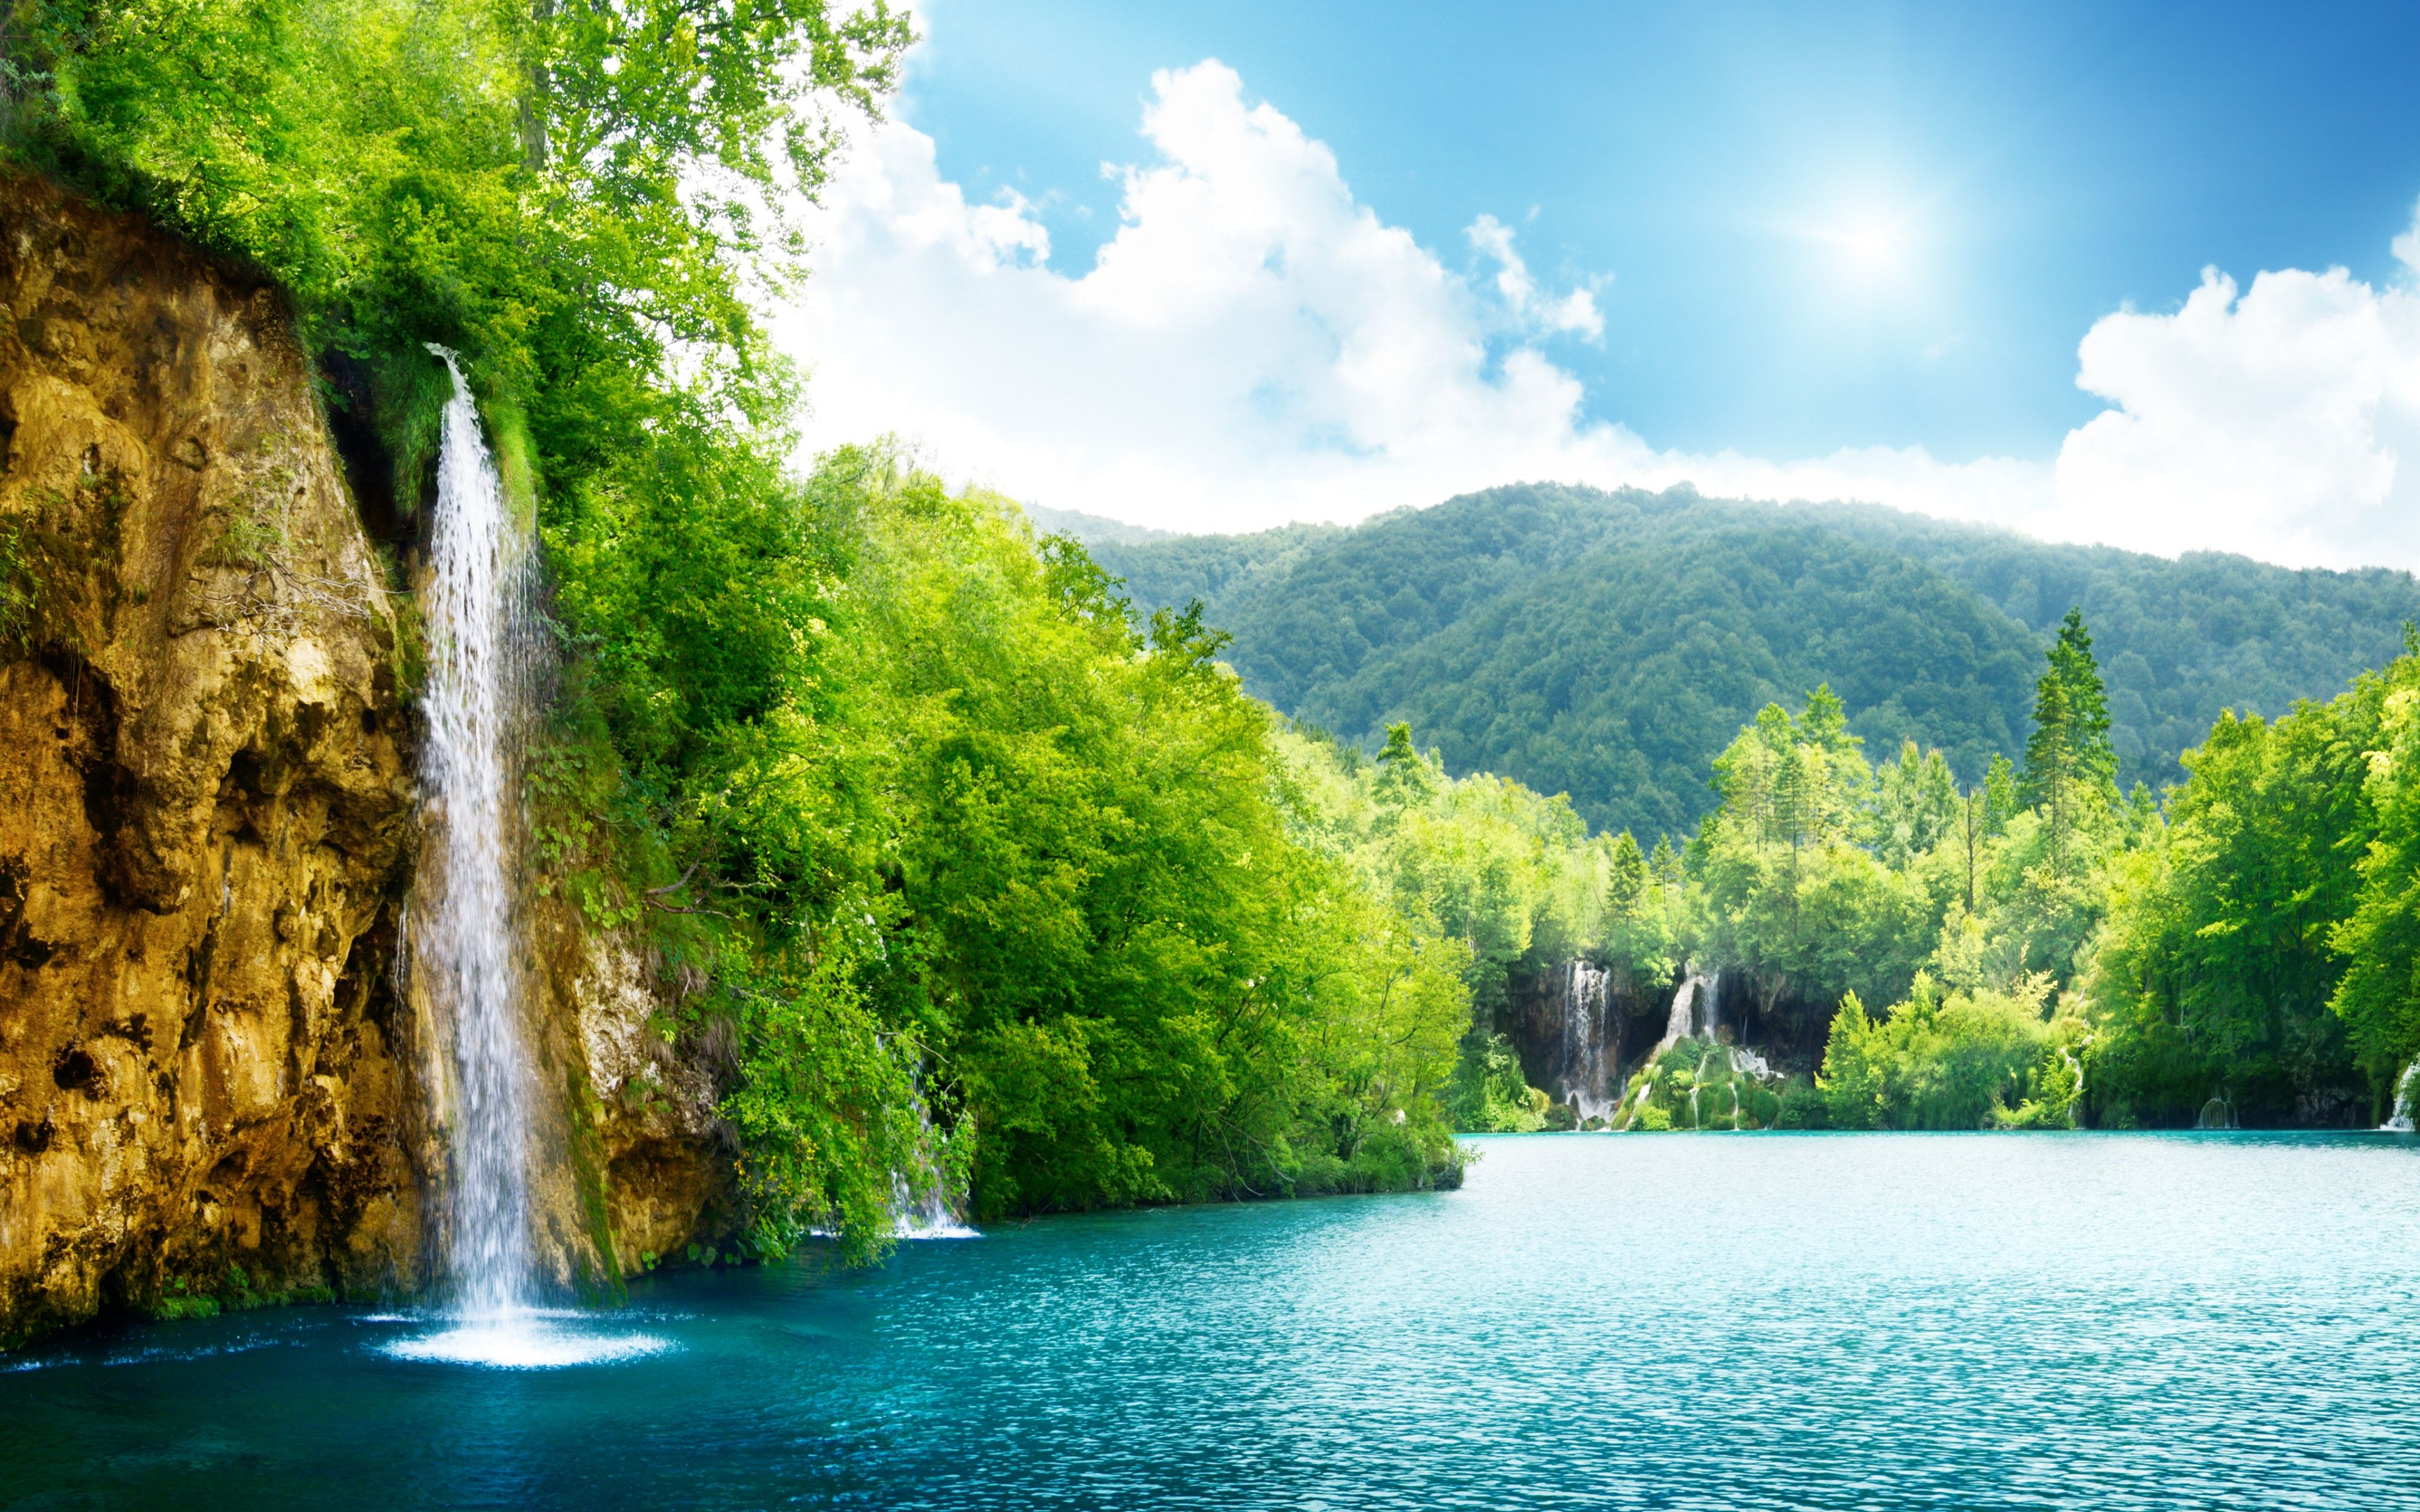 Nature Wallpaper Find best latest Nature Wallpaper in HD for